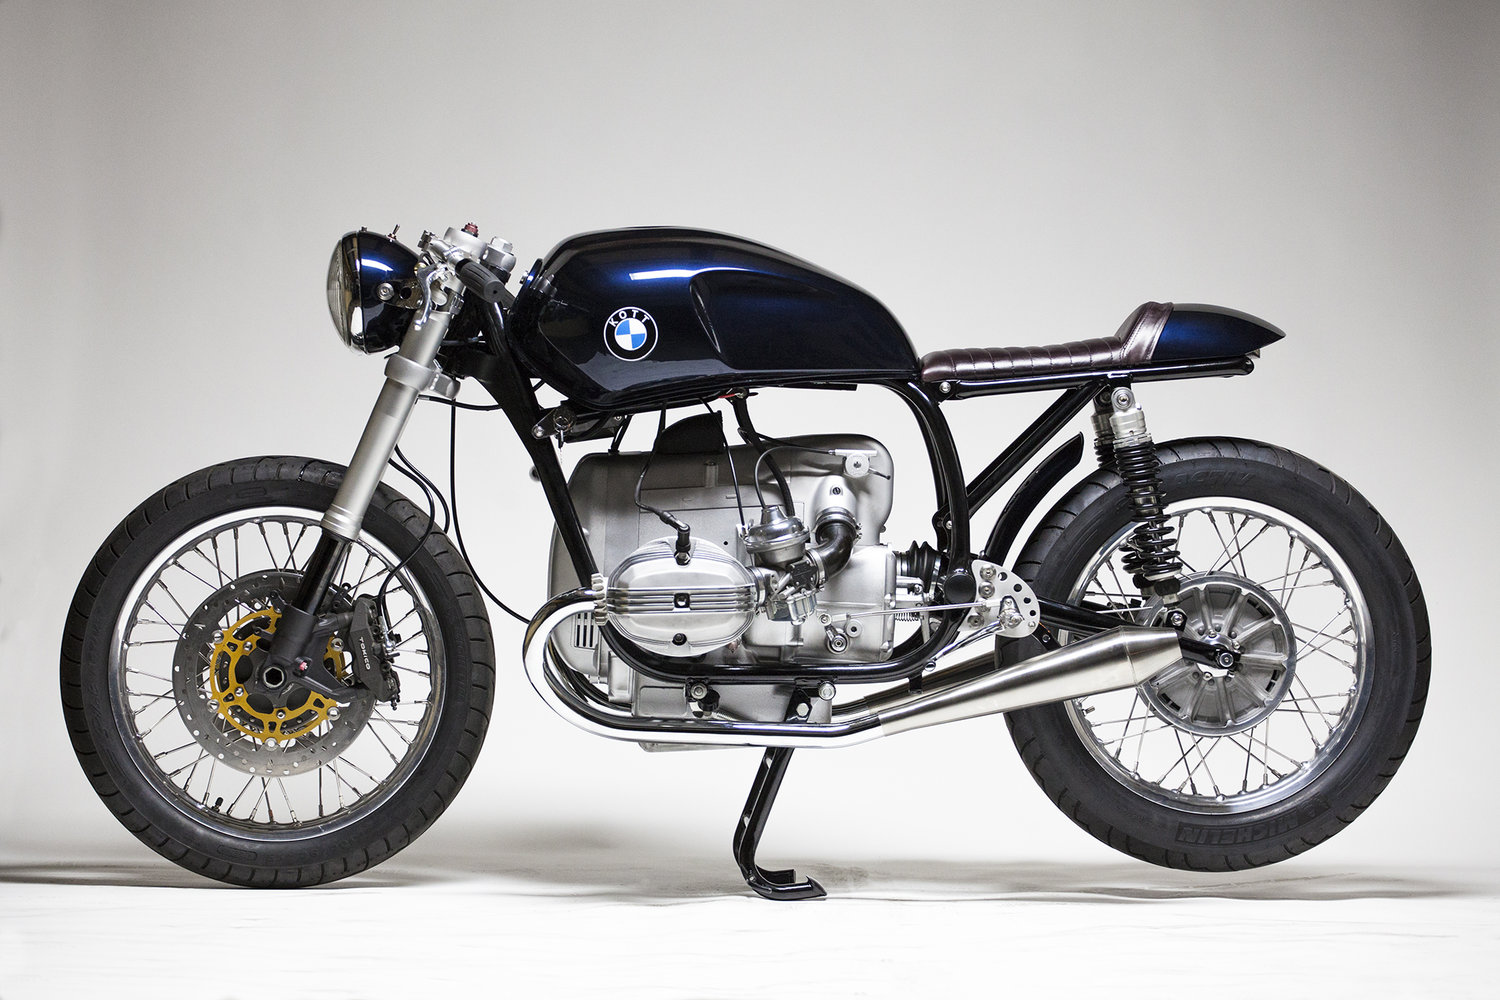 1977 BMW R100/7 — KOTT MOTORCYCLES